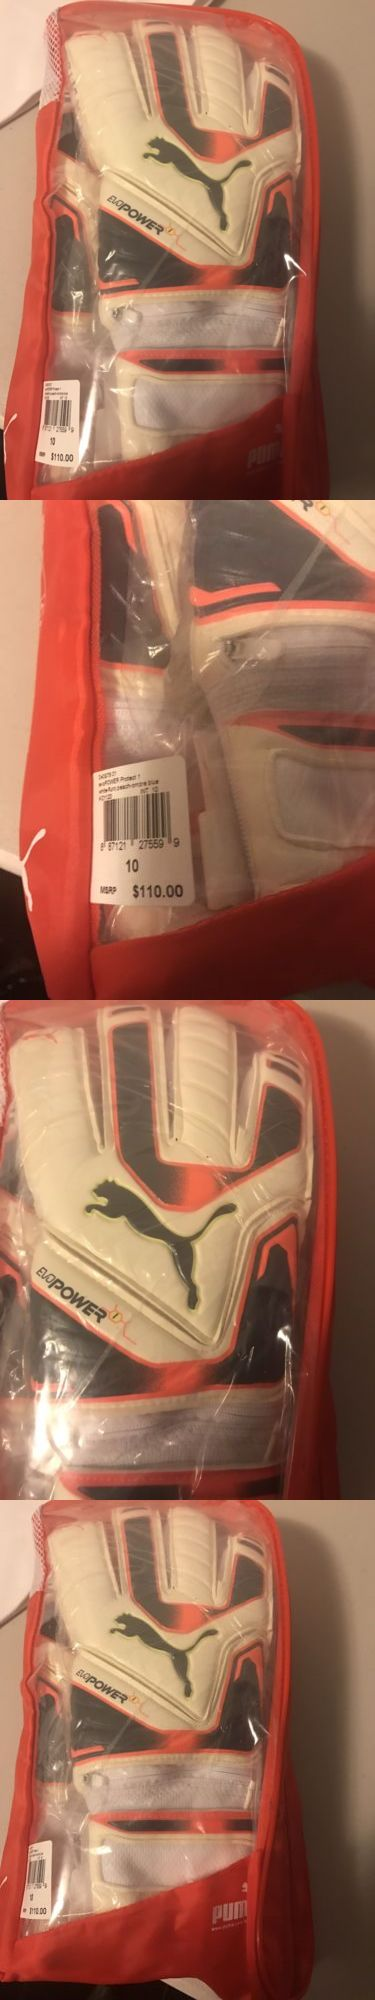 Gloves 57277: Puma Evopower Protect 1 Goalie Keeper Gloves Nwt Size 10 -> BUY IT NOW ONLY: $49.99 on eBay!